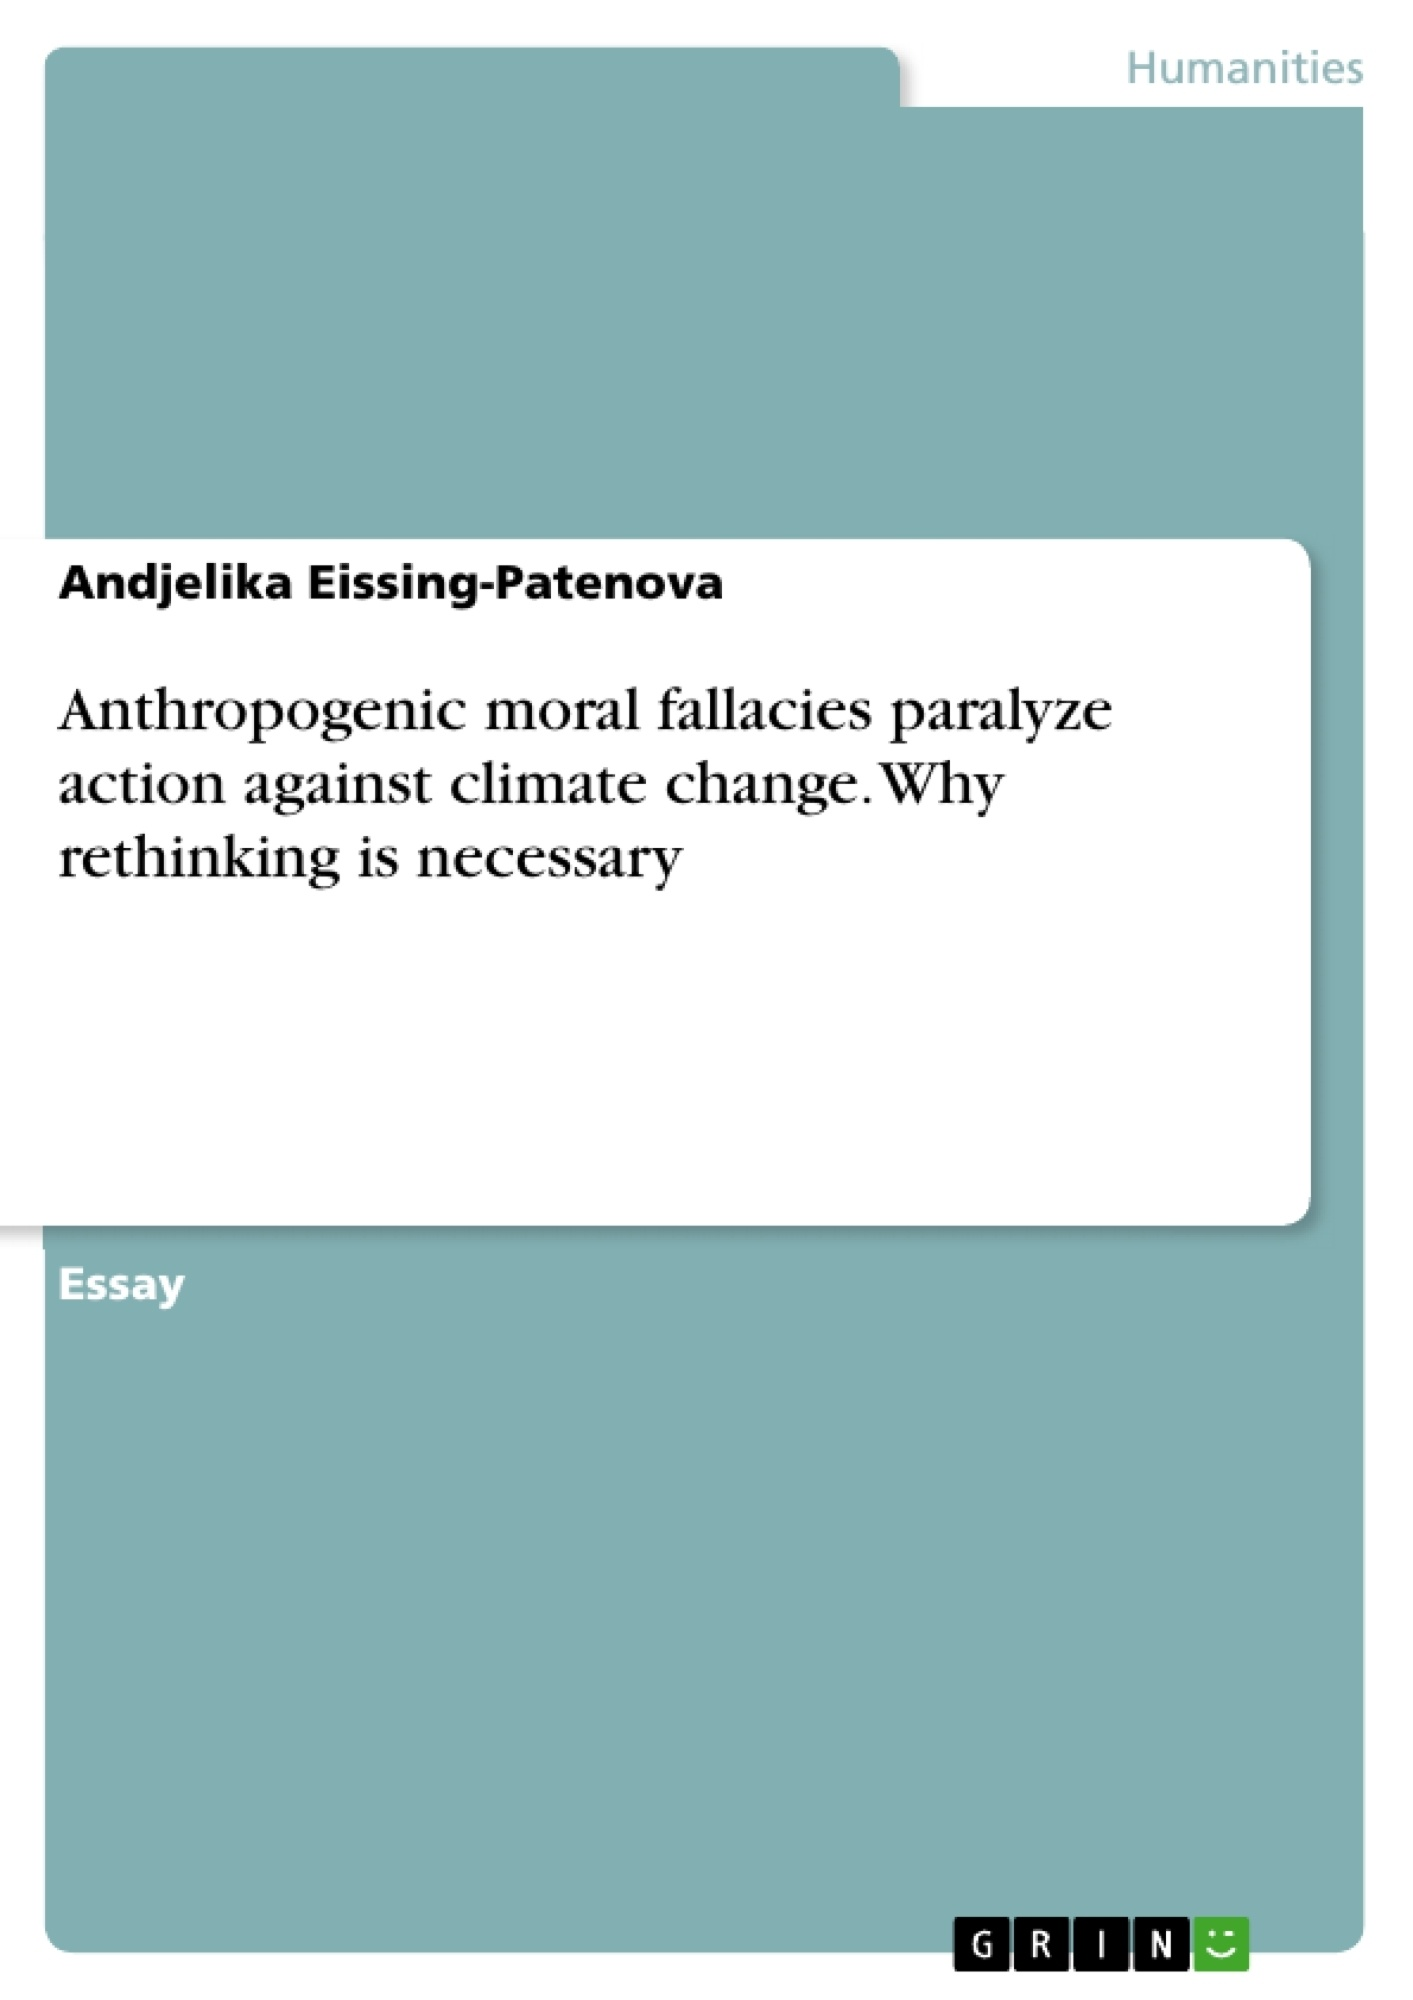 Title: Anthropogenic moral fallacies paralyze action against climate change. Why rethinking is necessary